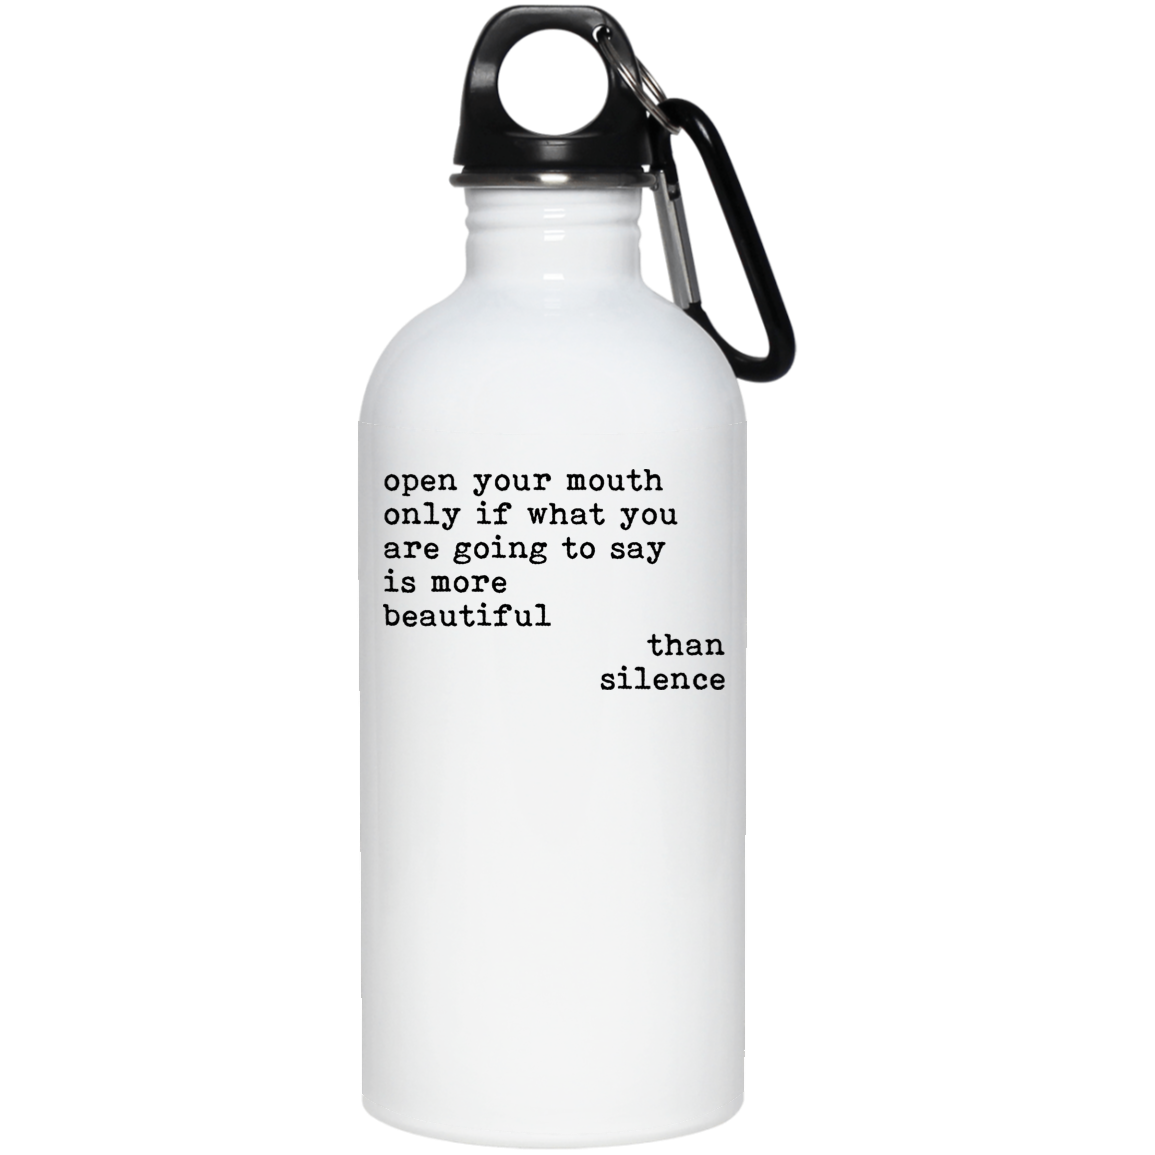 open your mouth only if Stainless Steel Water Bottle